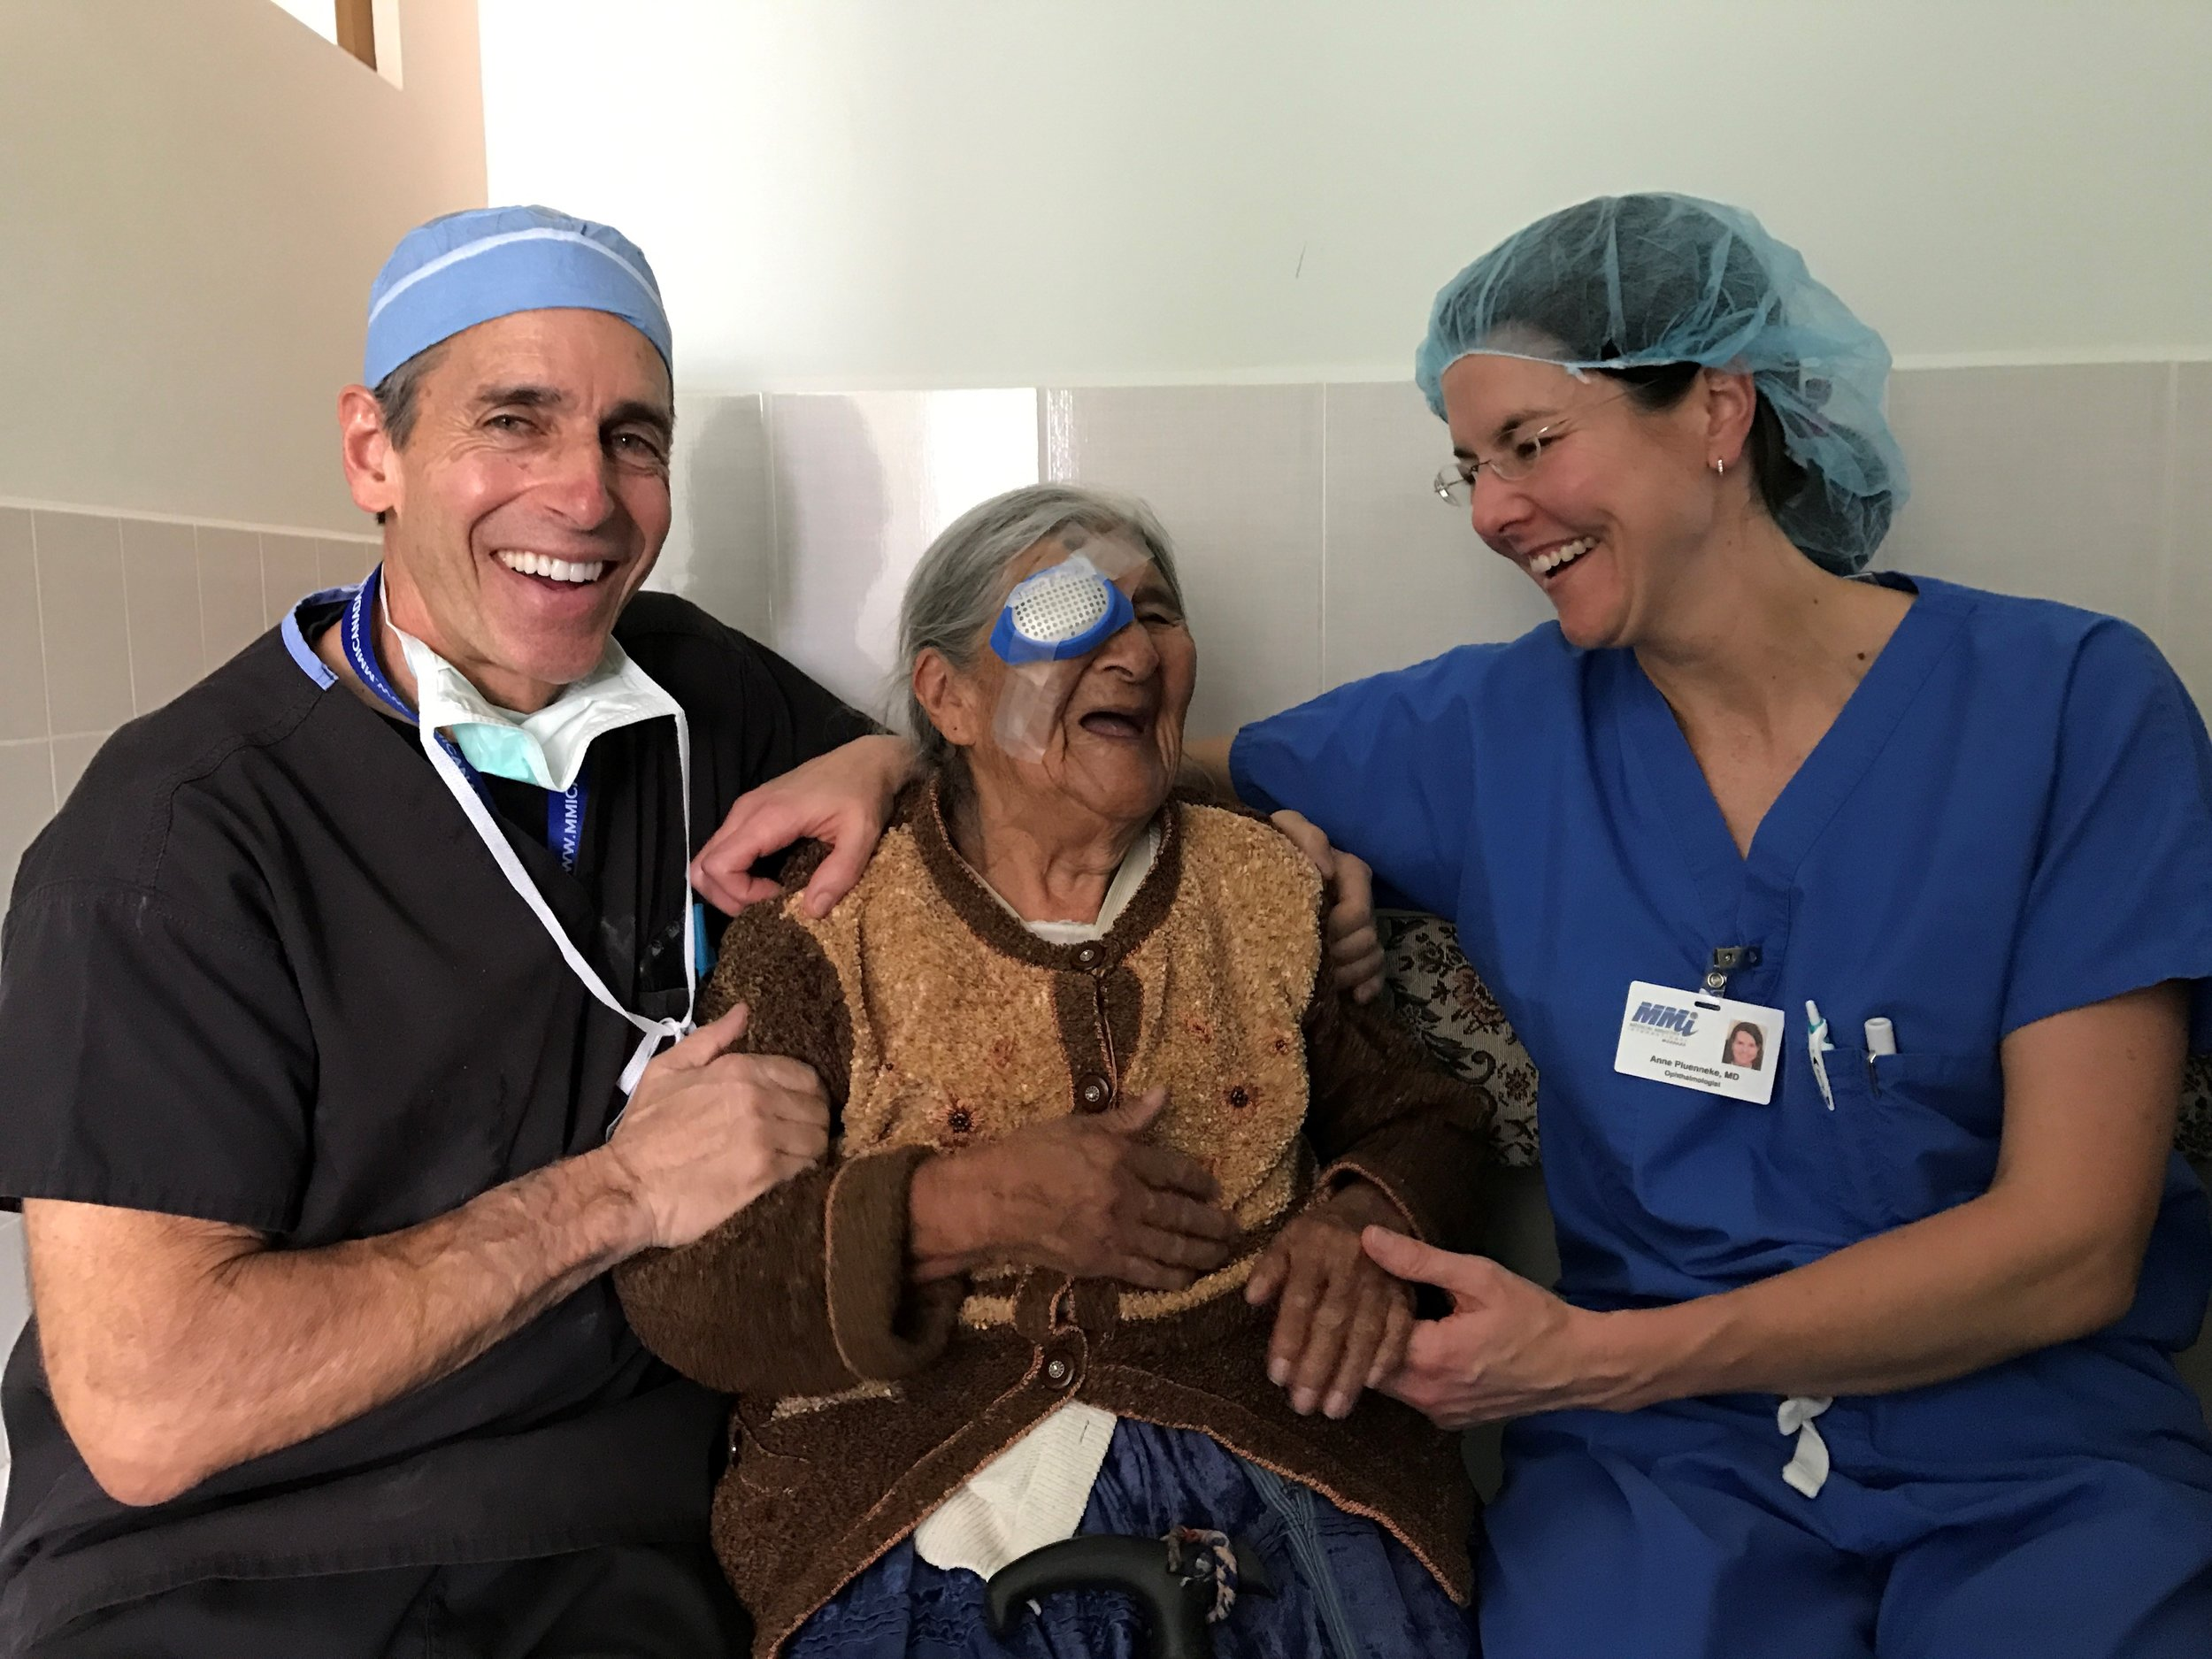 Dr. Rutgard and Dr. Pluenneke post-op with a Bolivian patient